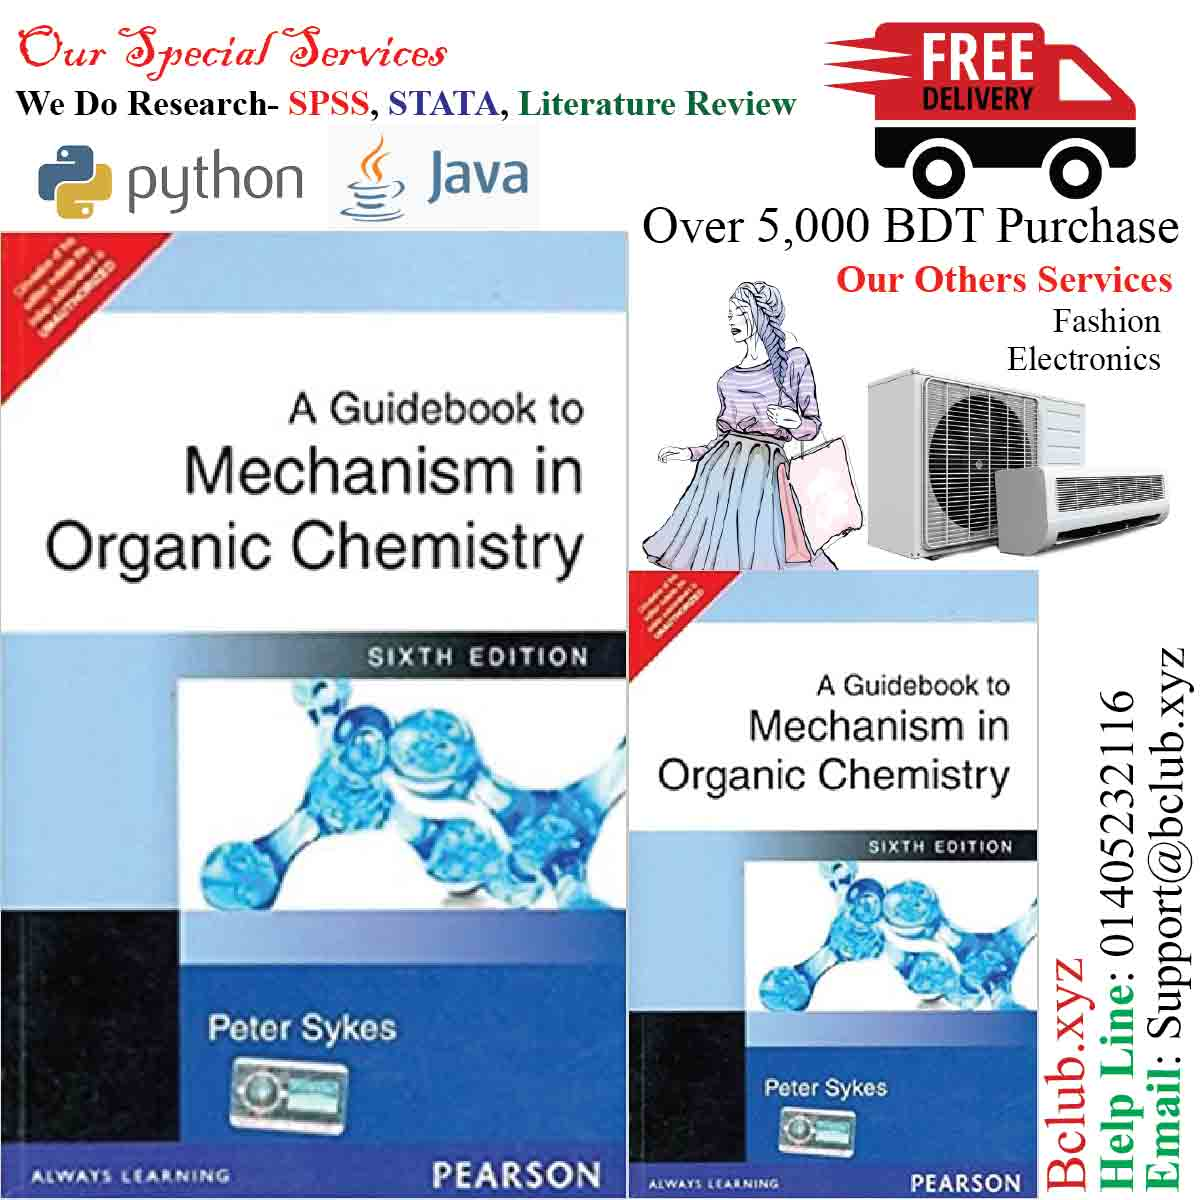 A Guidebook To Mechanism In Organic Chemistry 6th edition by SYKES PETER